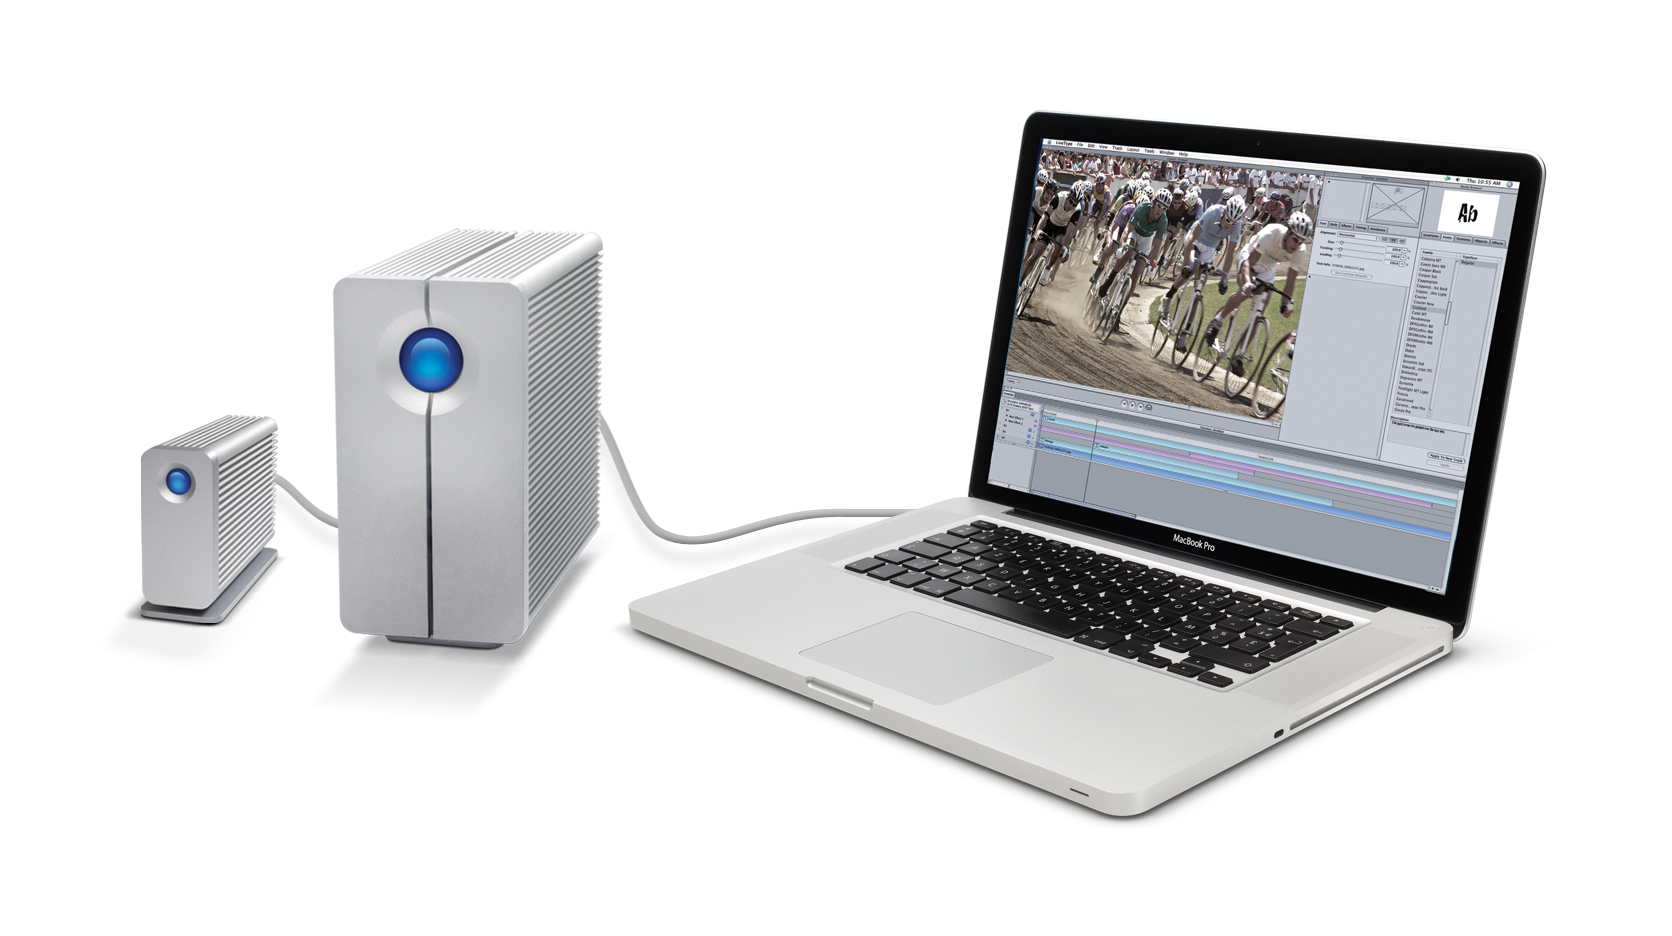 LaCie's Thunderbolt family of external hard drives now includes both the Little Big Disk and the LaCie 2big.